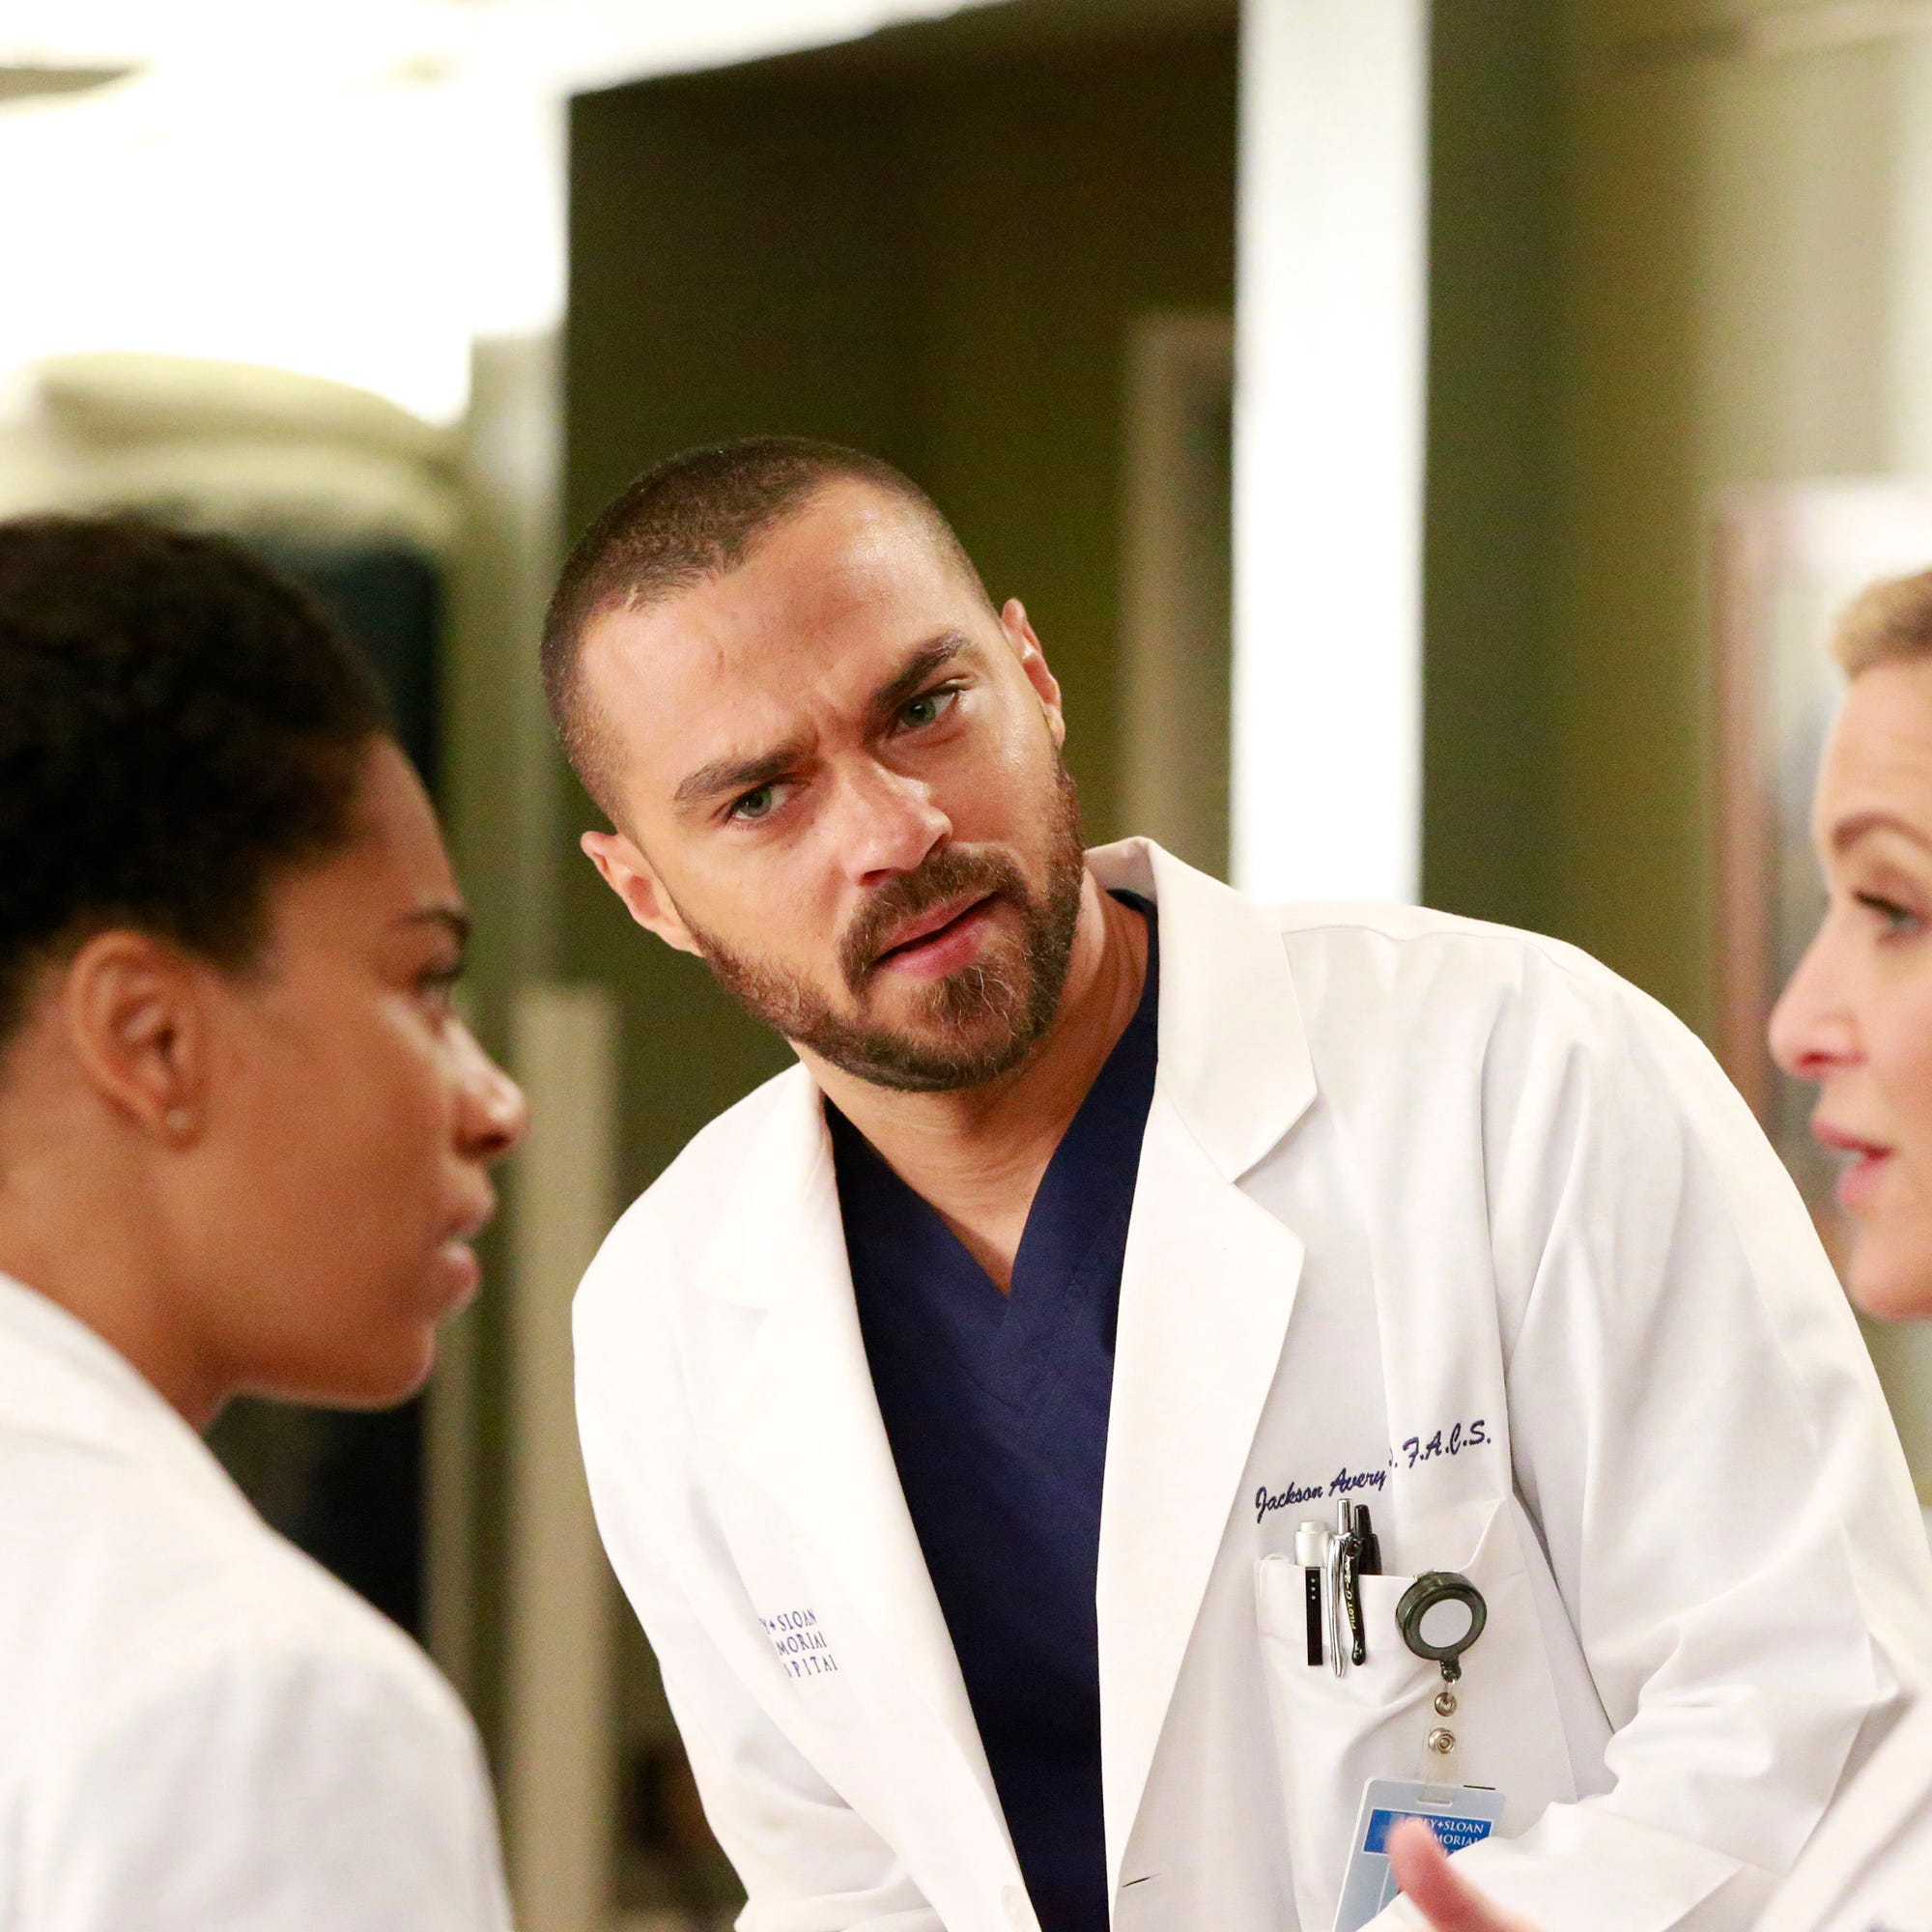 Greys Anatomy Season 13 Episode 12 Recap